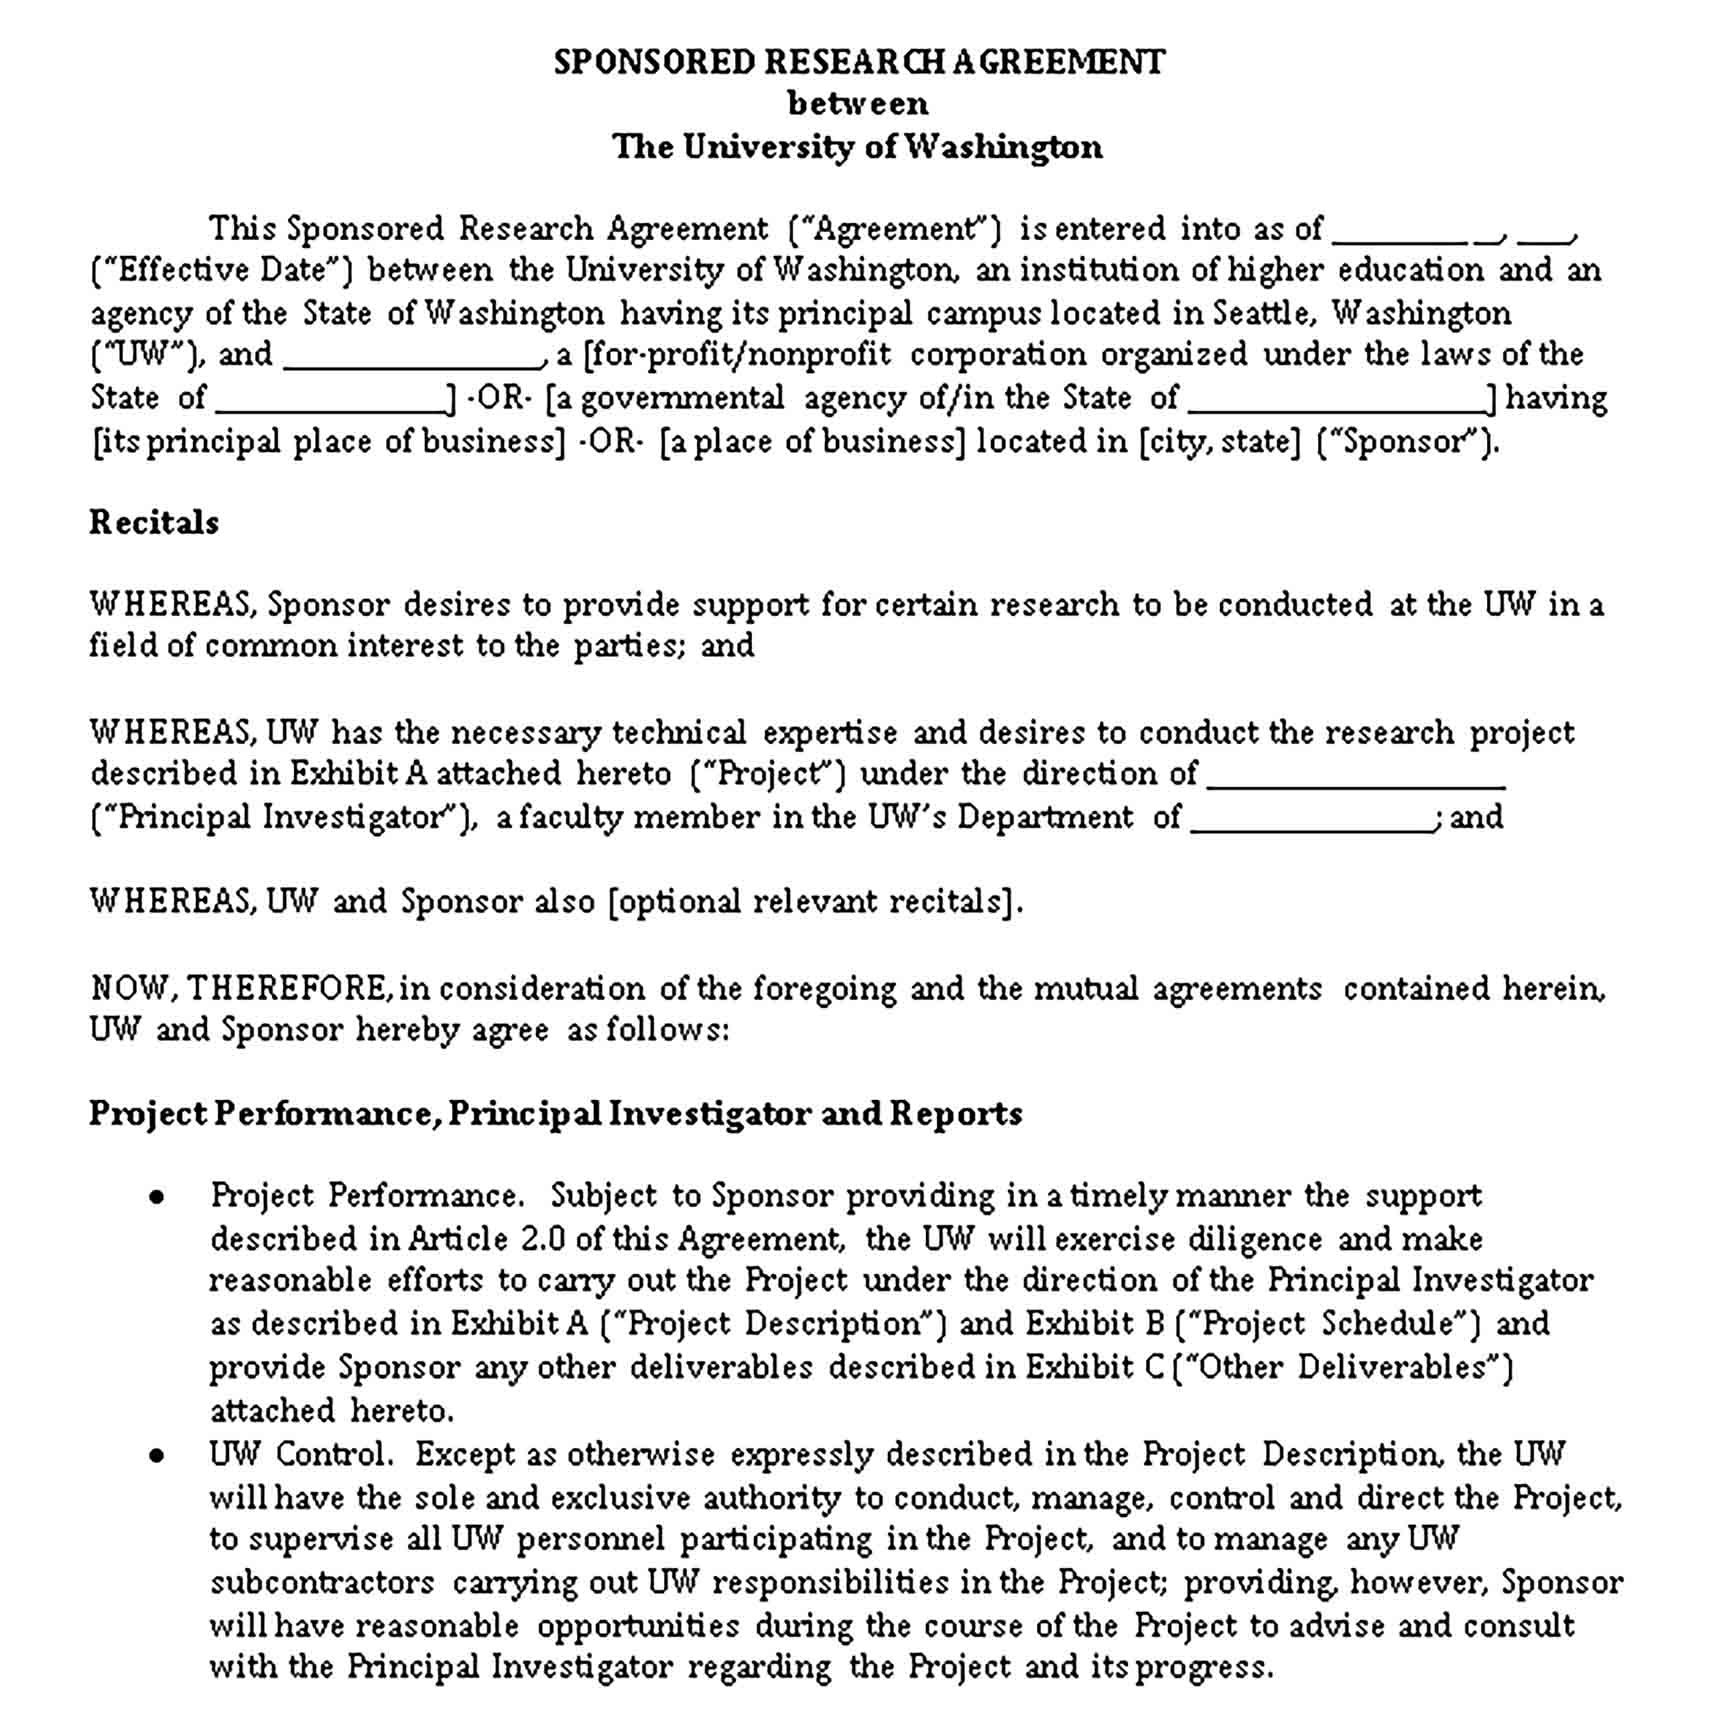 Templates Sponserd Research Legal Agreeement Sample